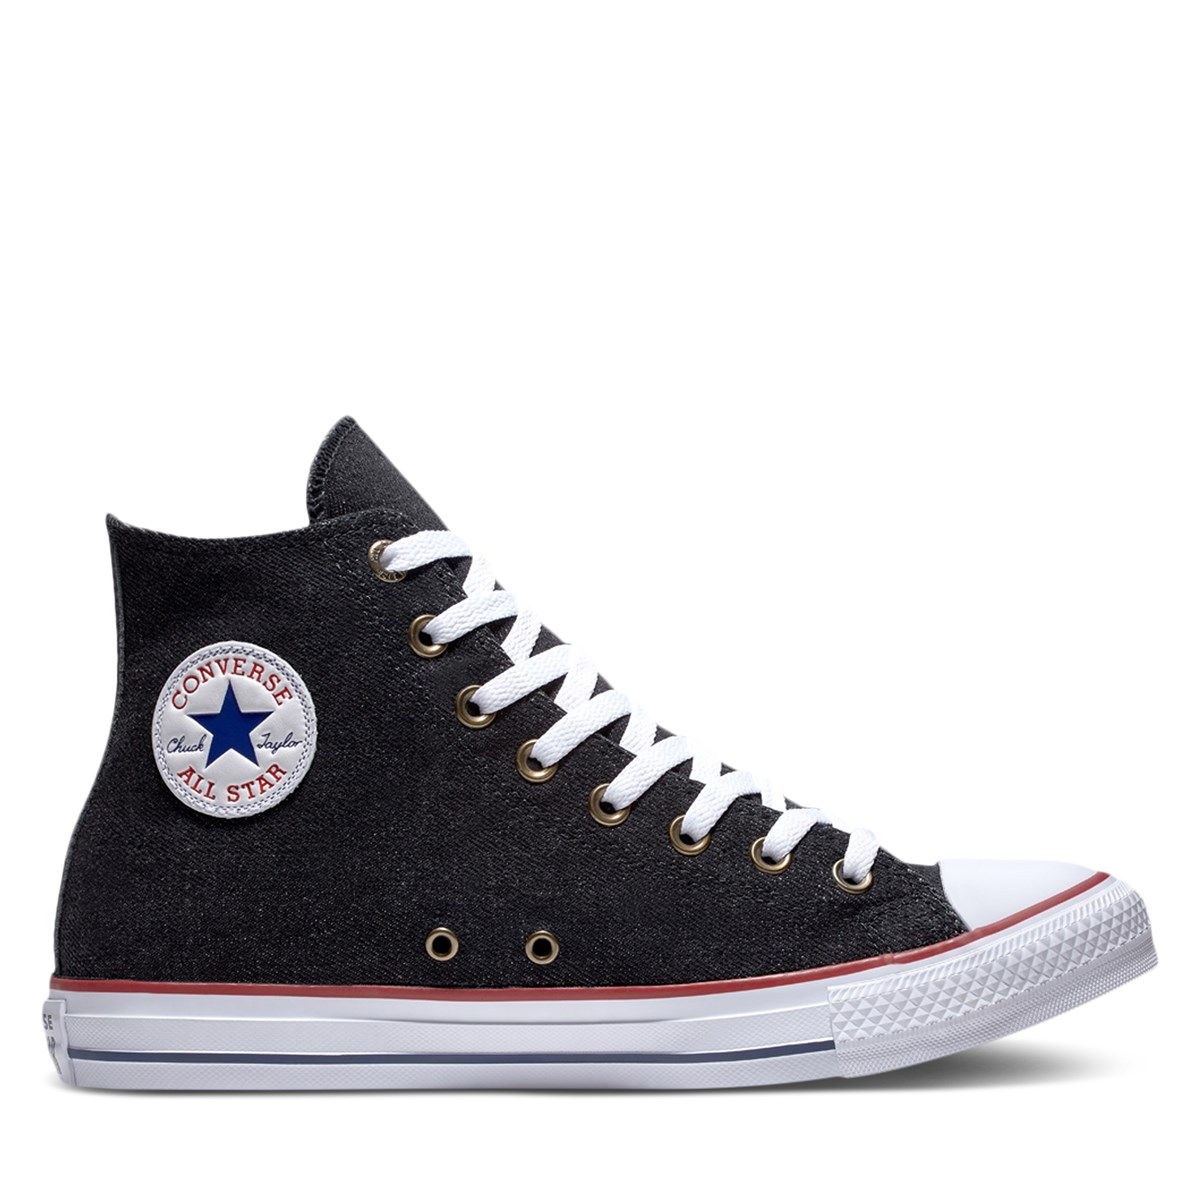 0ed3028609cba9 Men s Chuck Taylor All Star HI Denim Sneaker in Black